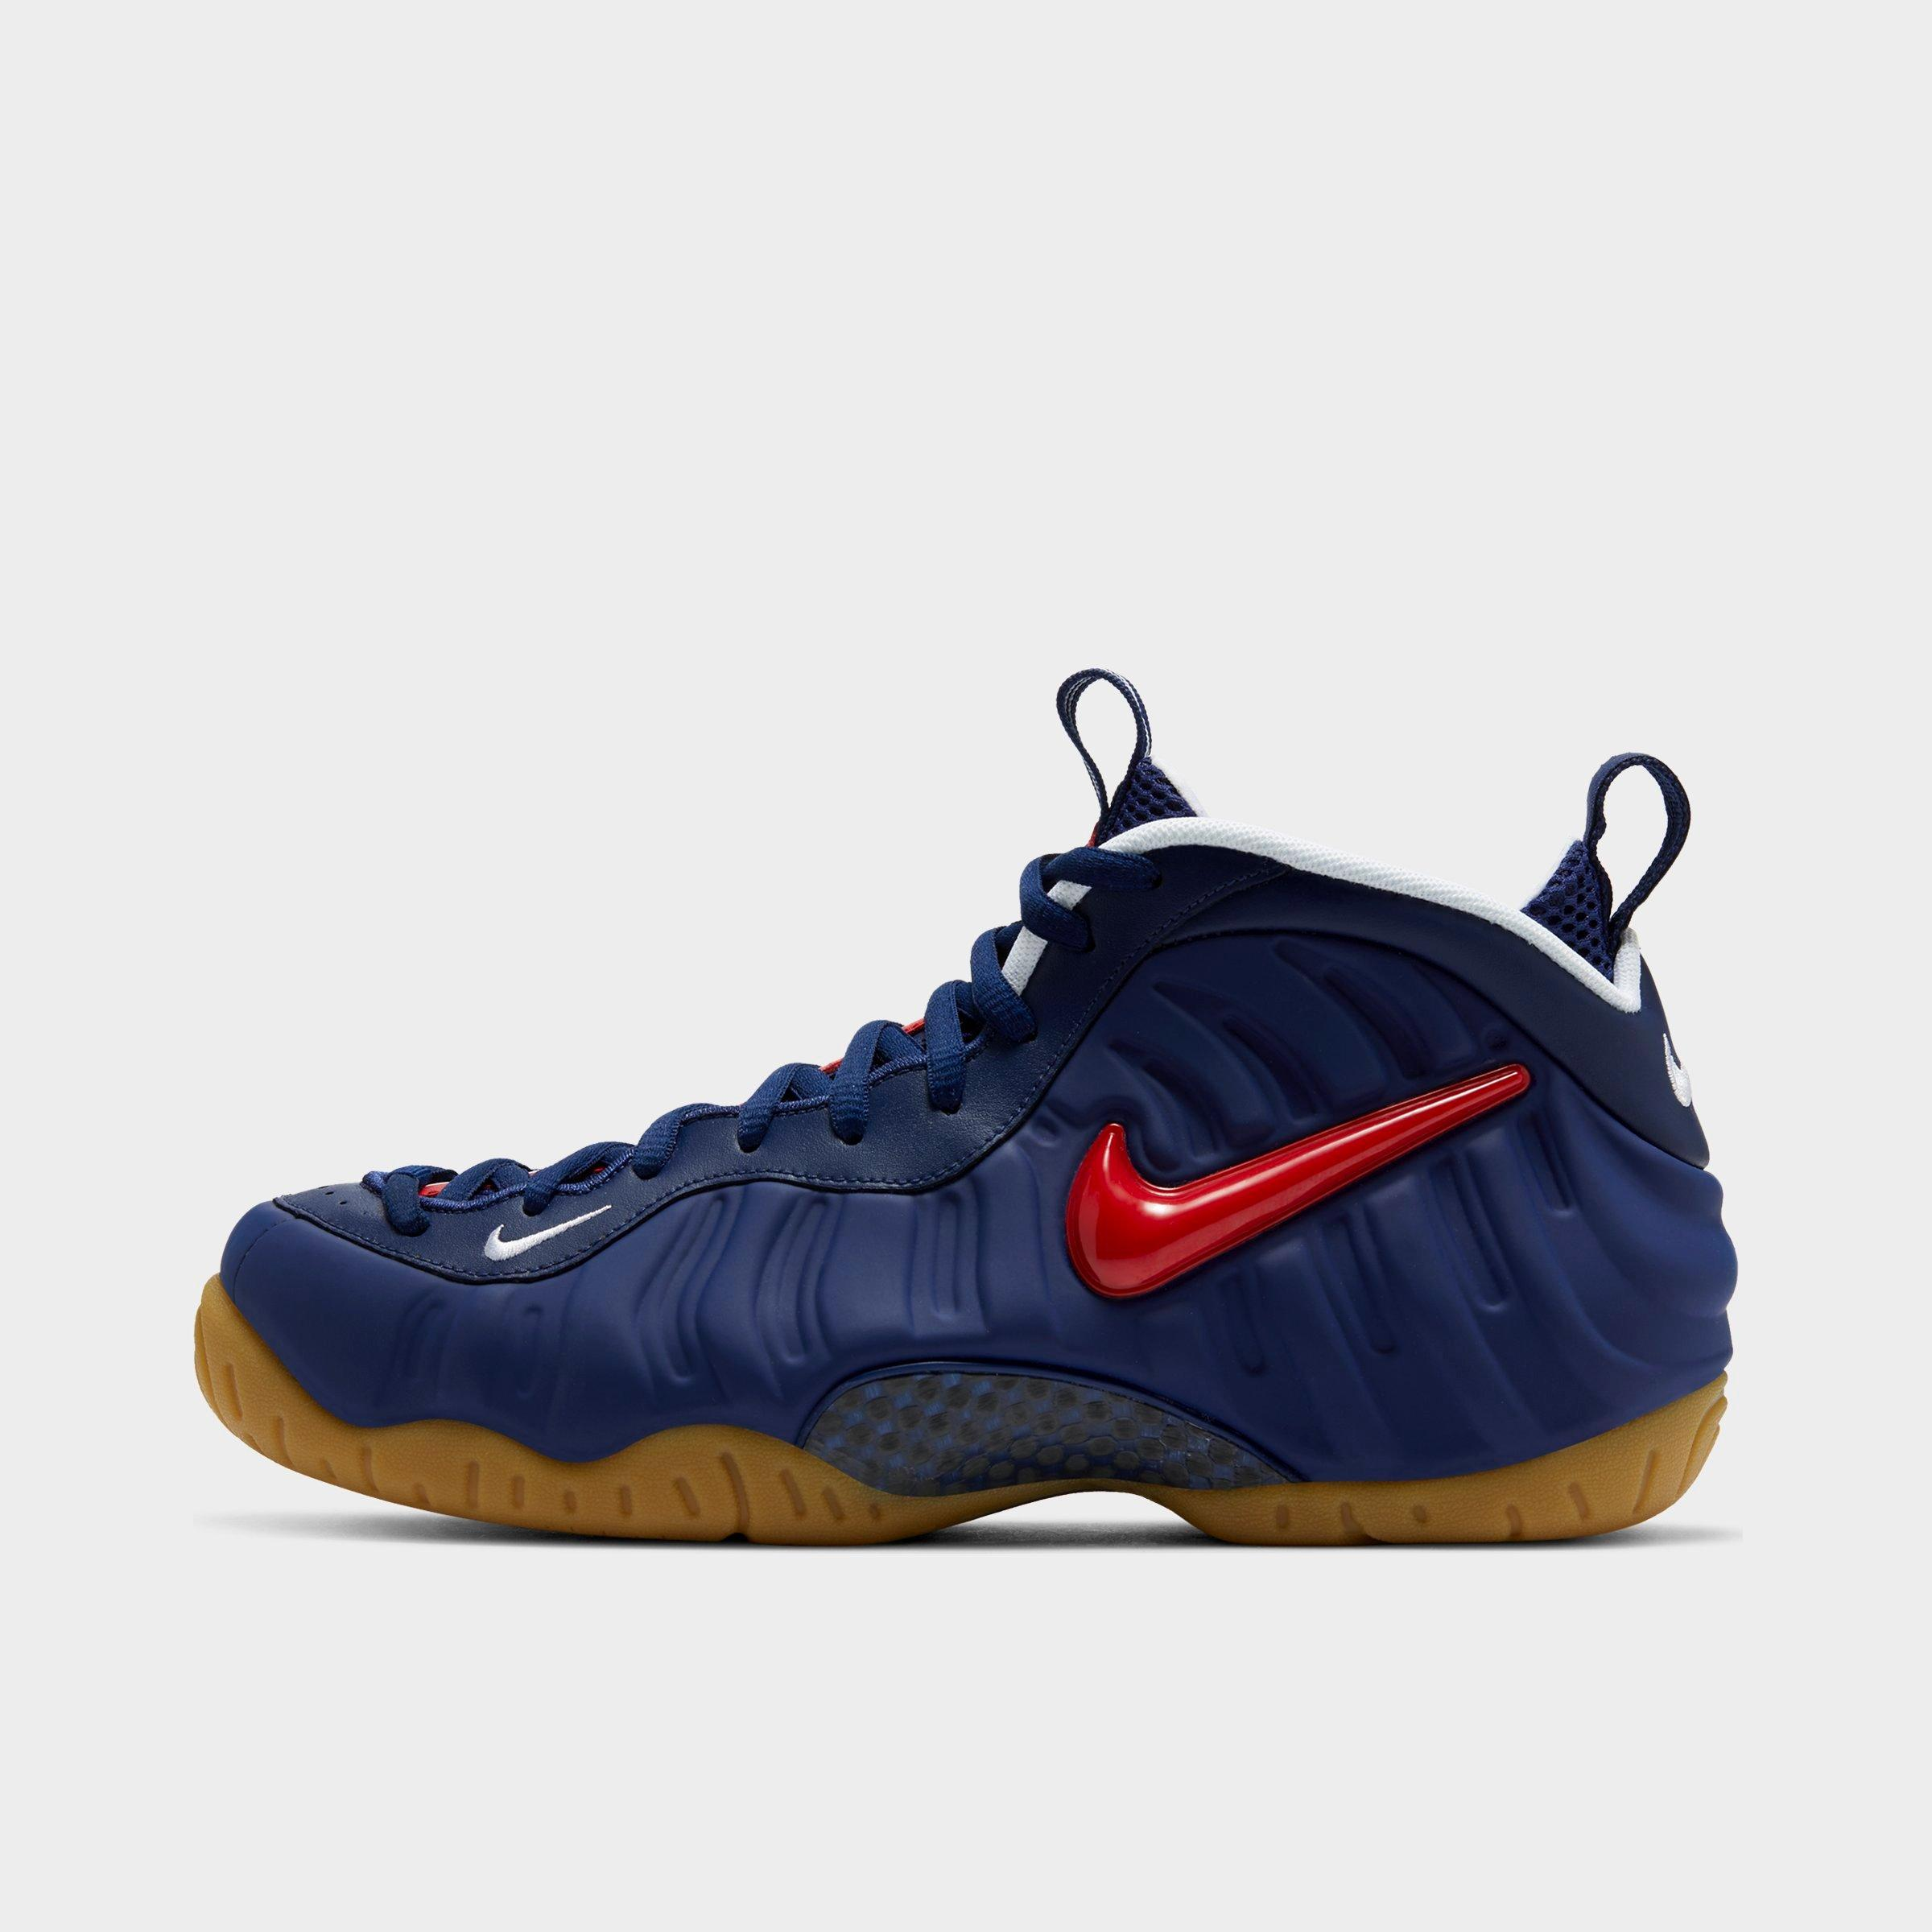 Free Shipping Nike Air Foamposite One Habanero Red Black ...